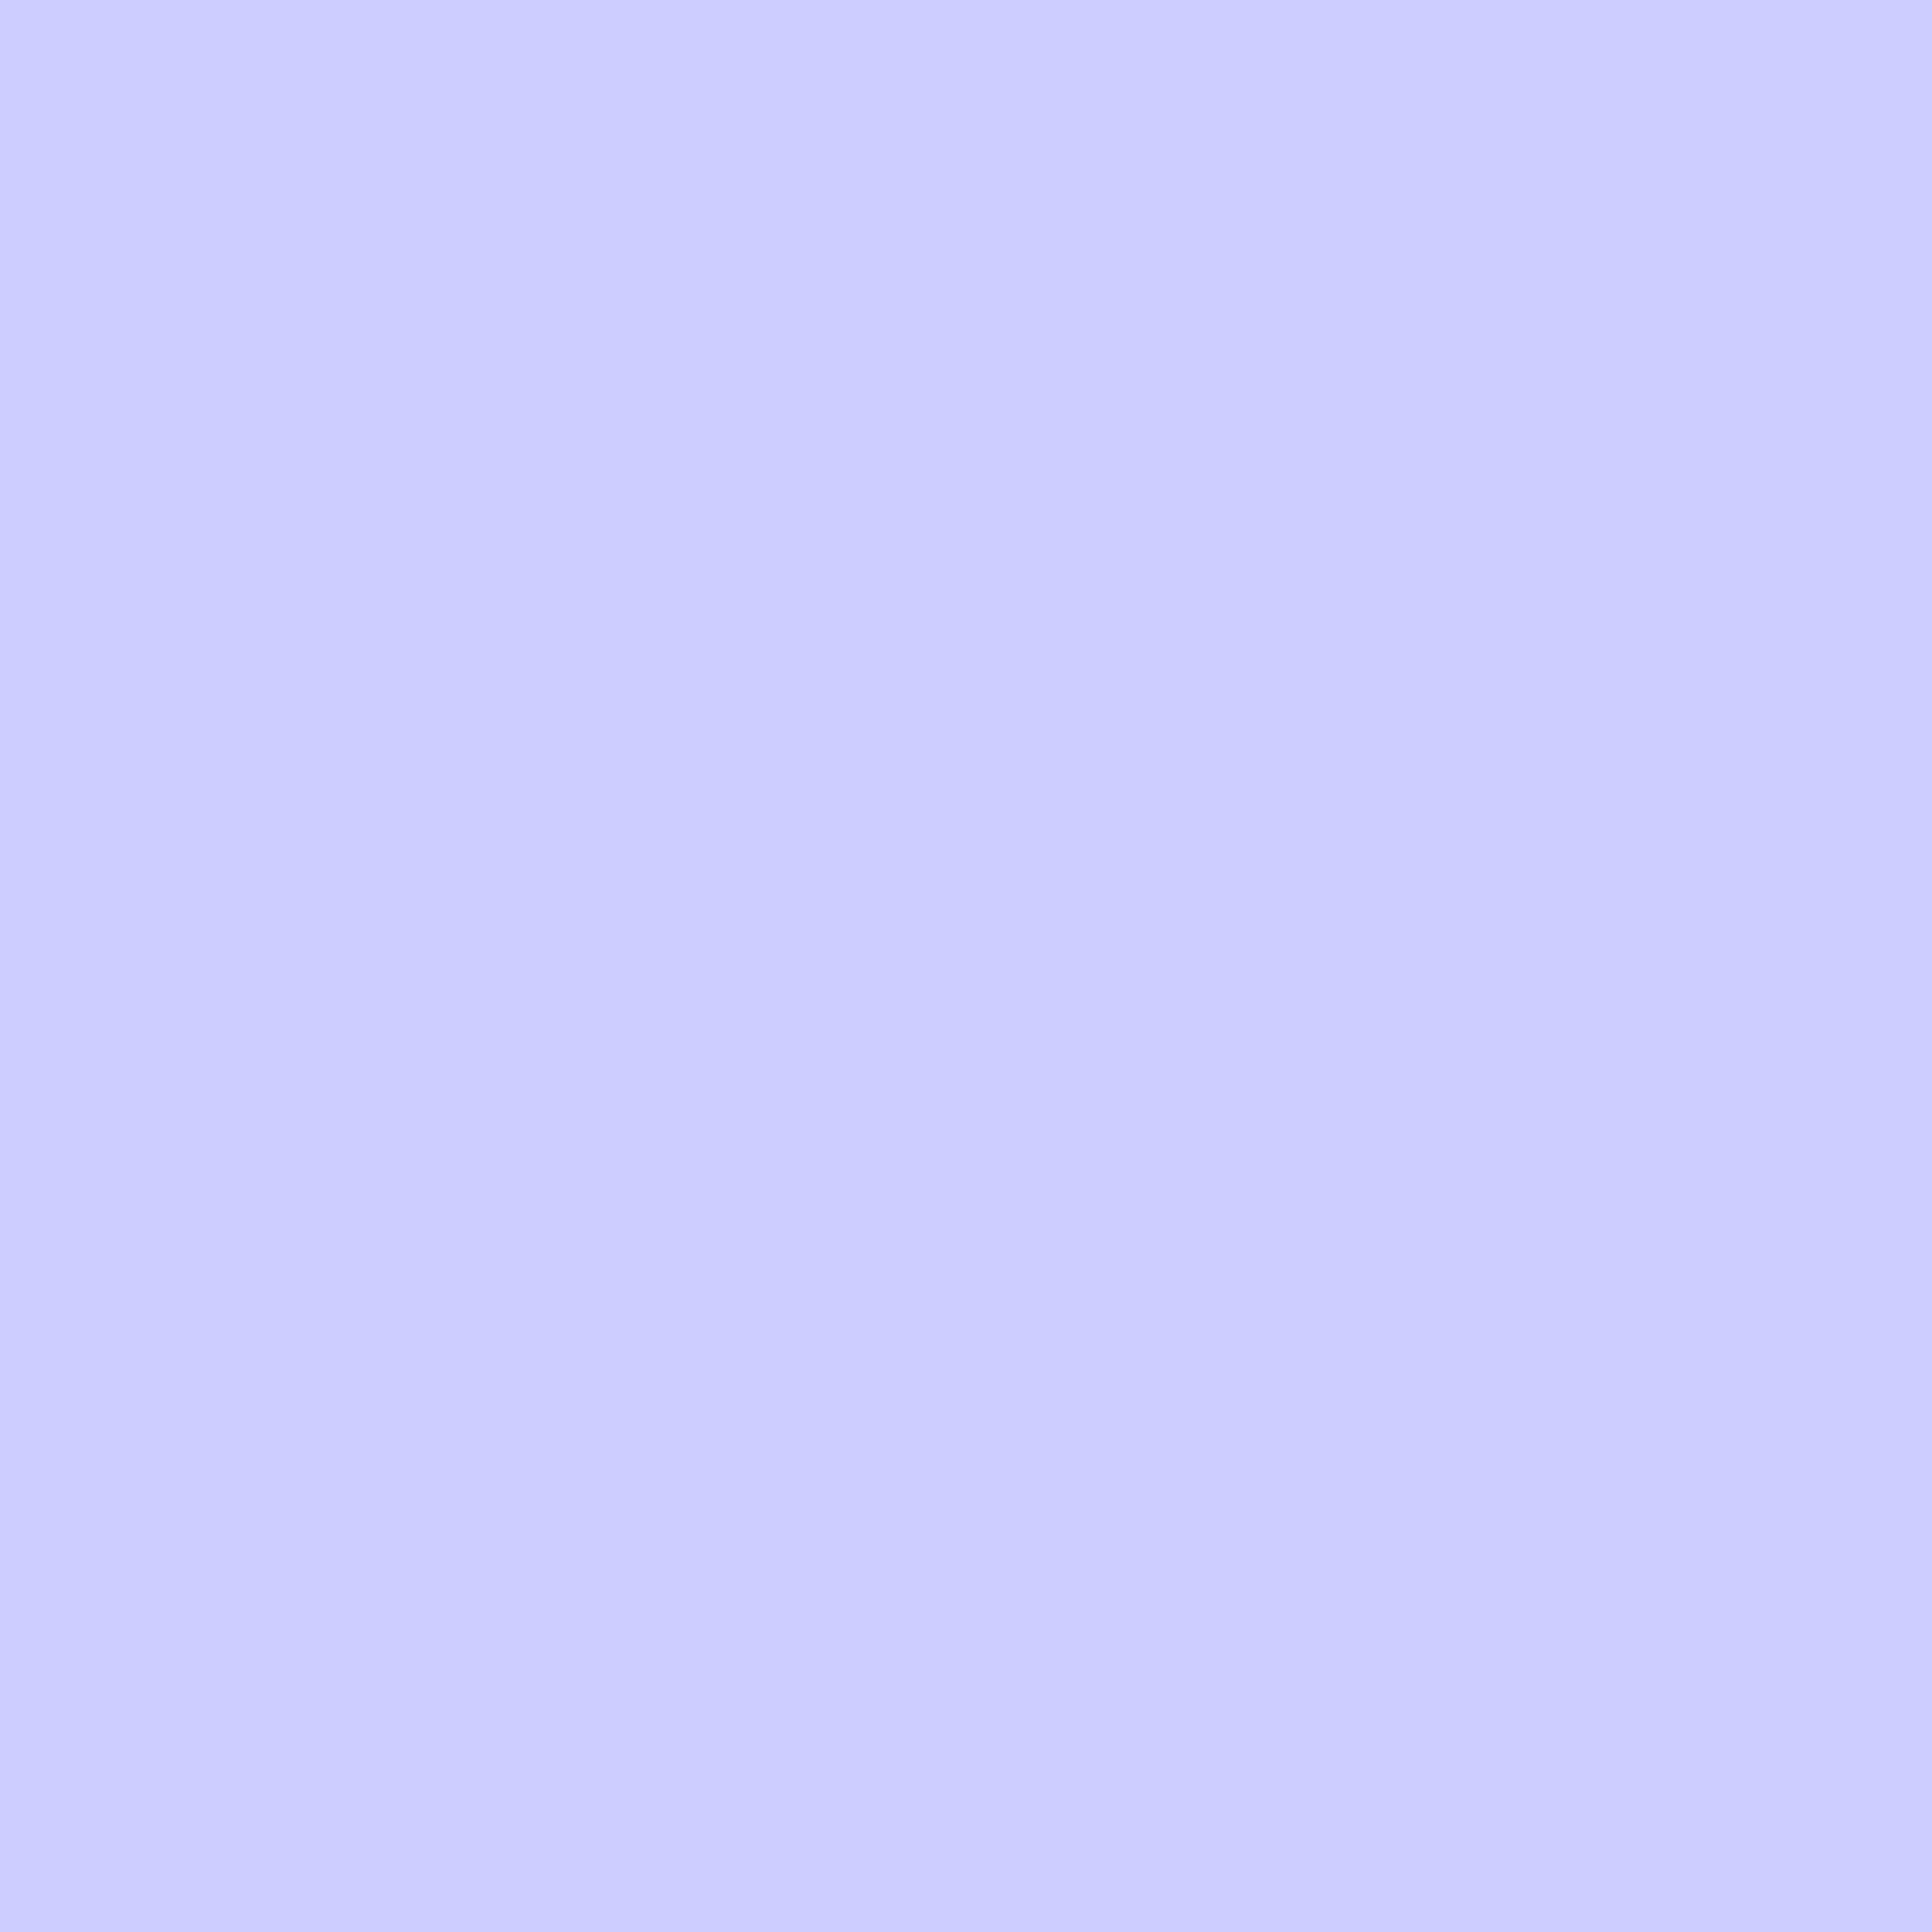 3600x3600 Periwinkle Solid Color Background